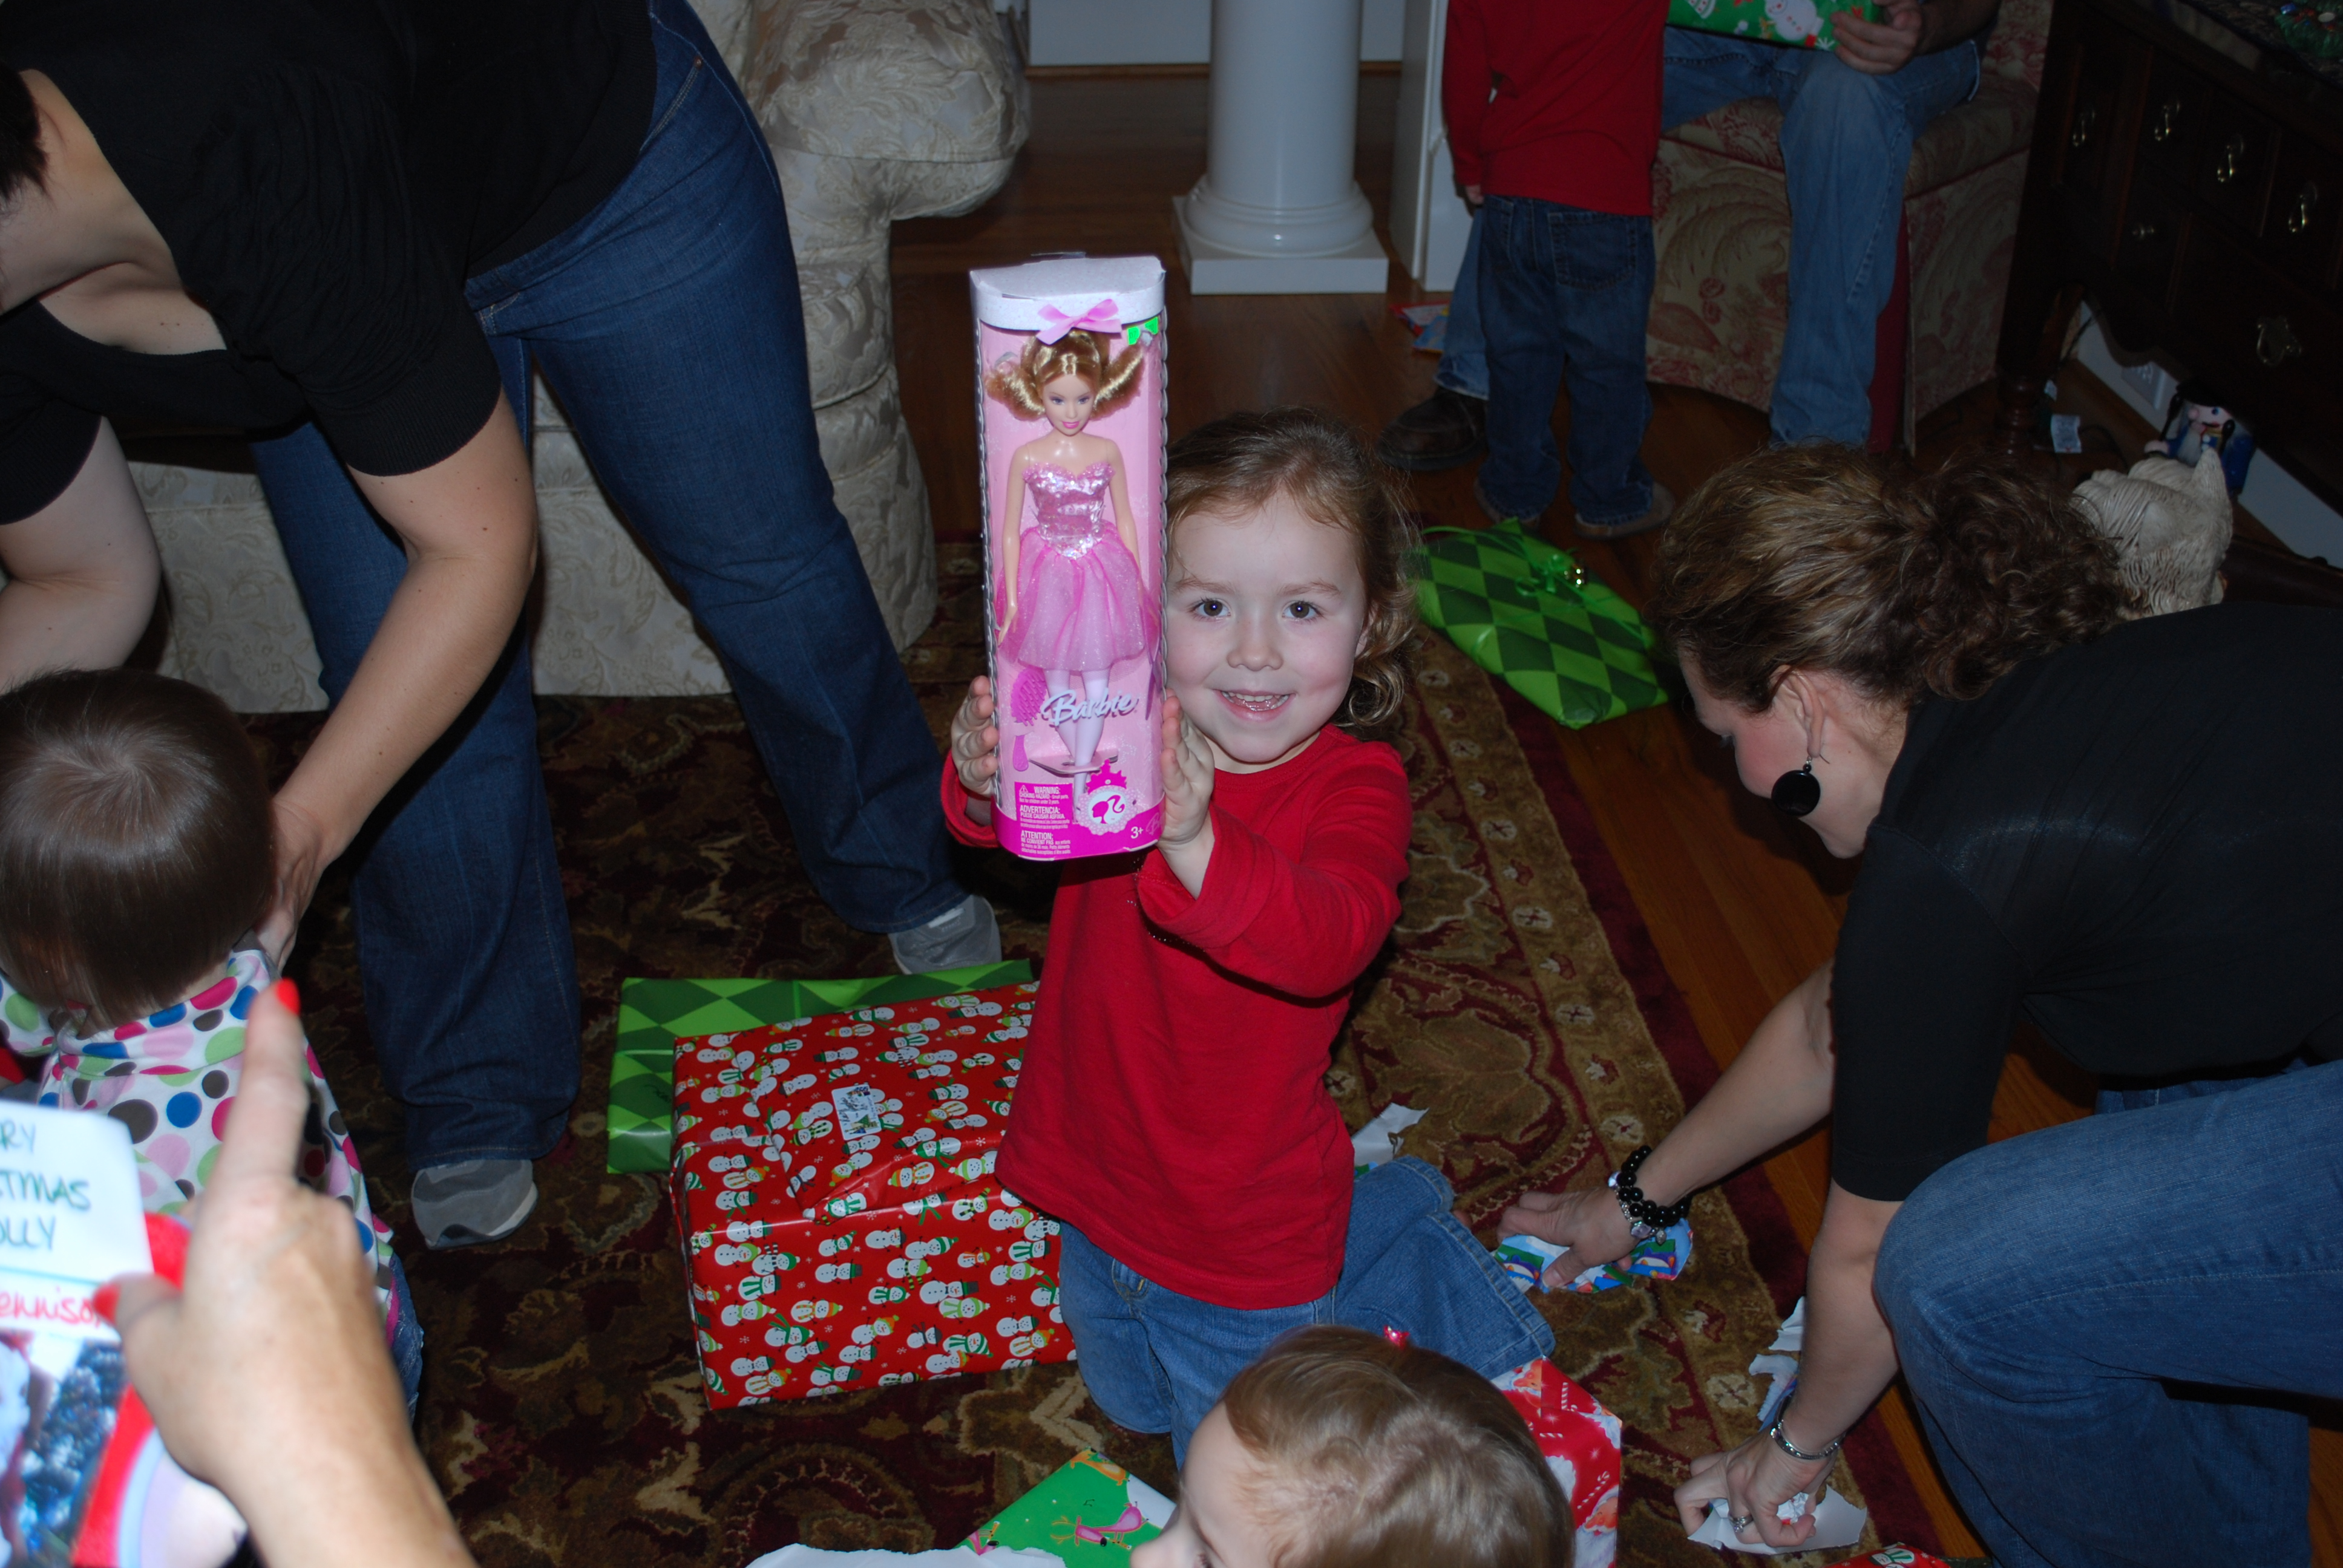 Ruby got a Barbie from Aunt Cacy